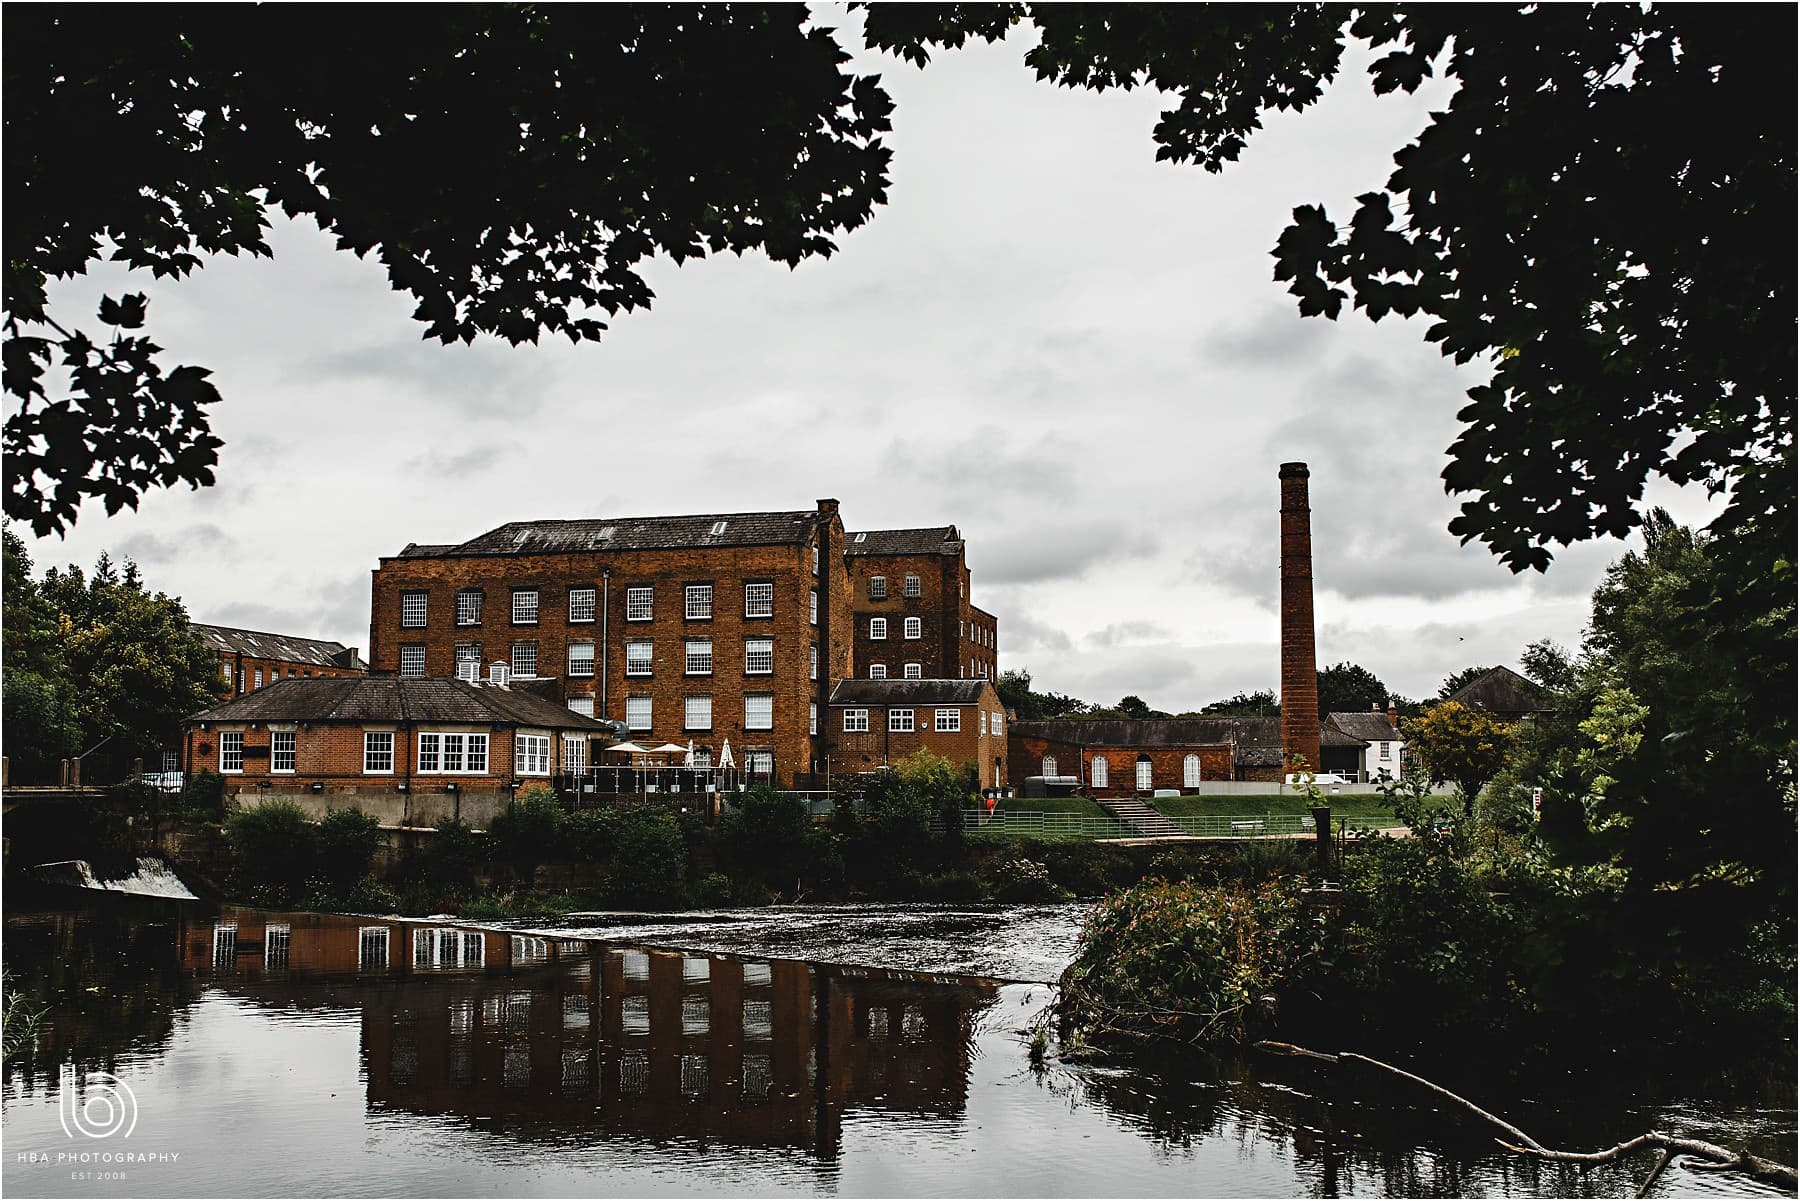 a photo of the west mill wedding venue from accross the river